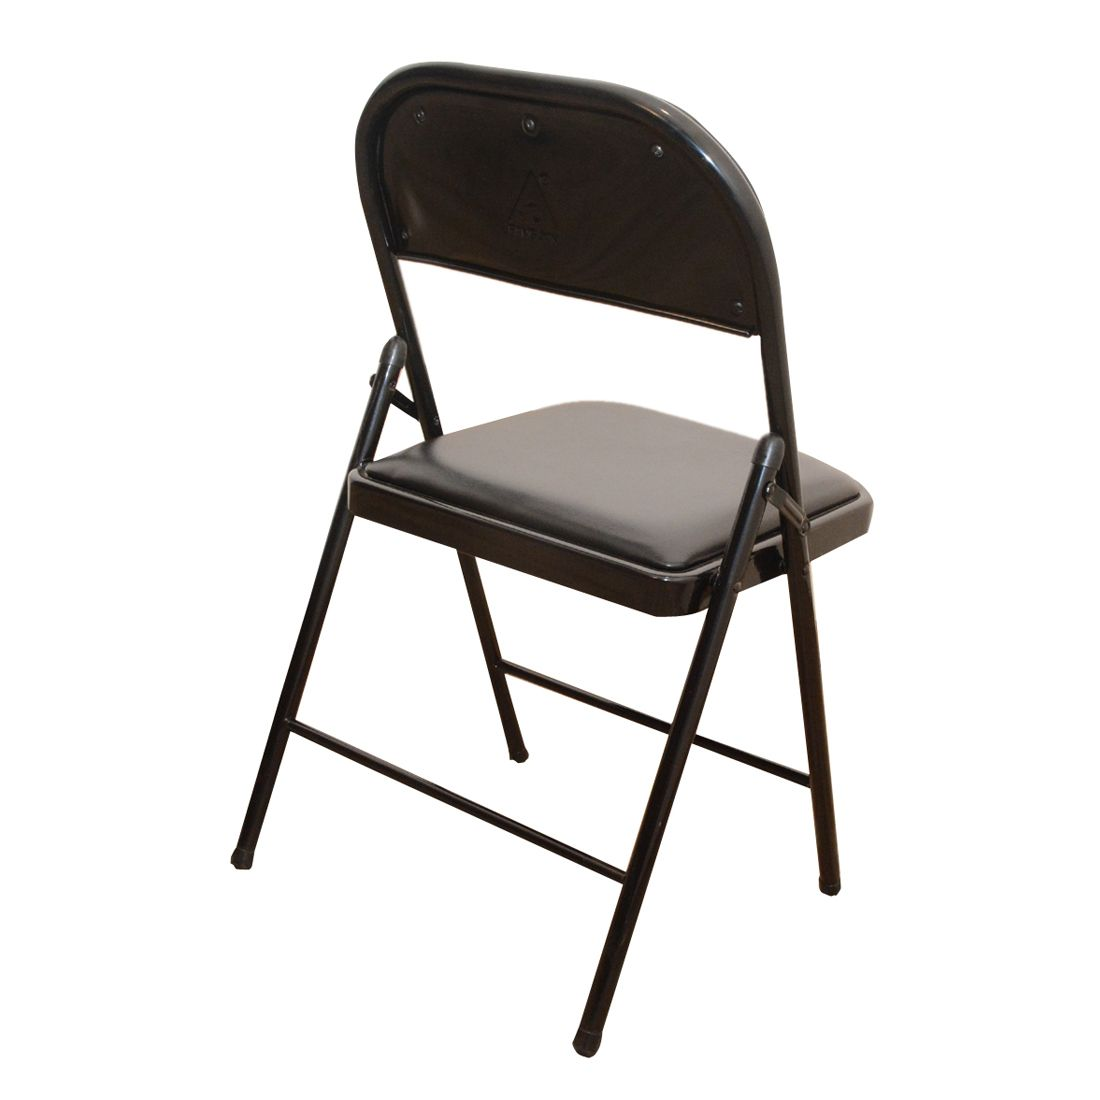 Pleasing Eros Metal Folding Chair Buy Eros Metal Folding Chair Online At Best Prices In India On Snapdeal Gmtry Best Dining Table And Chair Ideas Images Gmtryco